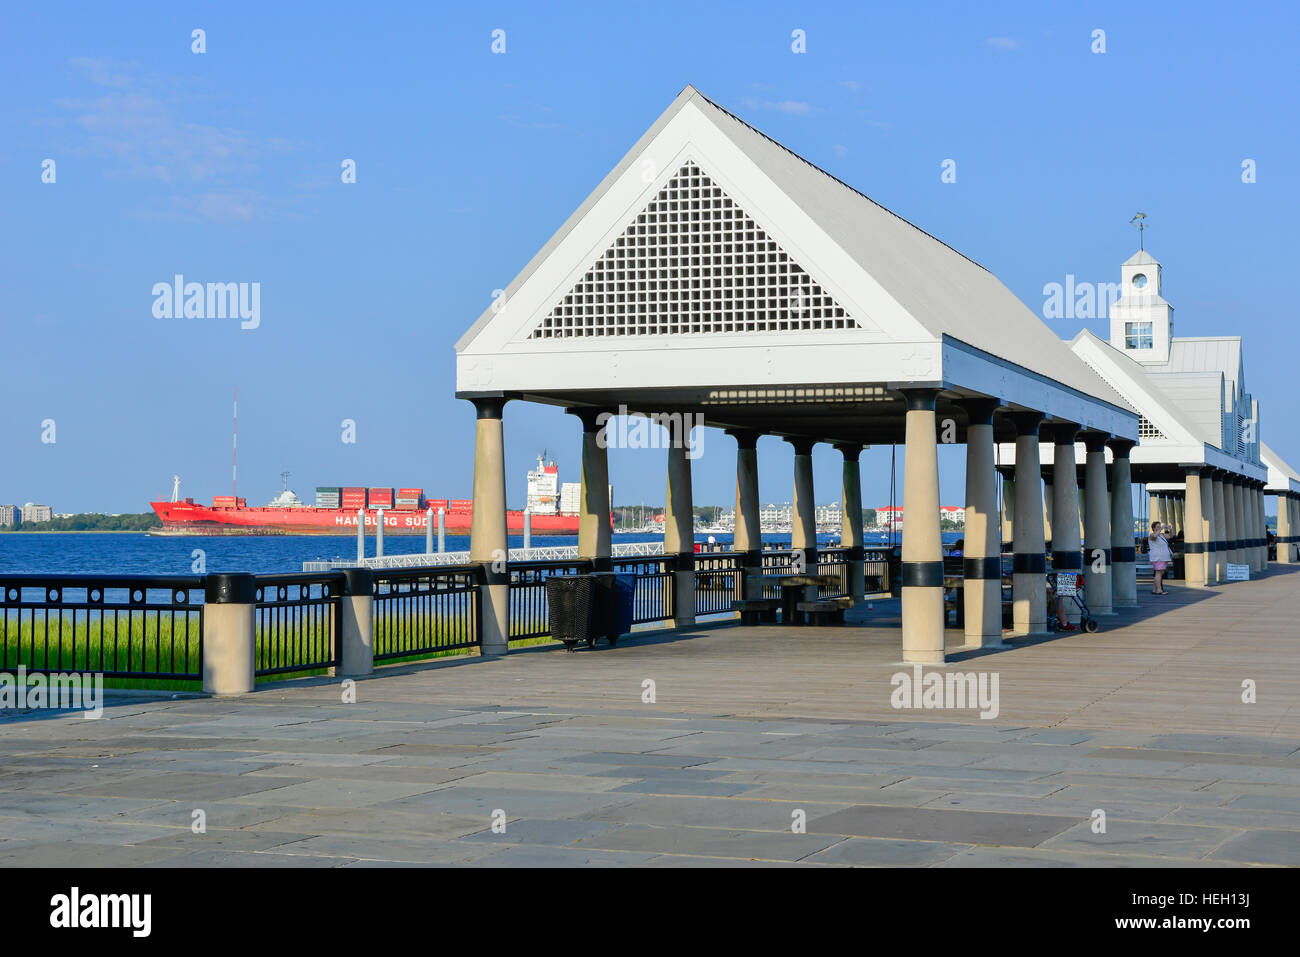 People watch container ships from Vendue Wharf at Riverfront Park covered shelters overlooking the Cooper River - Stock Image